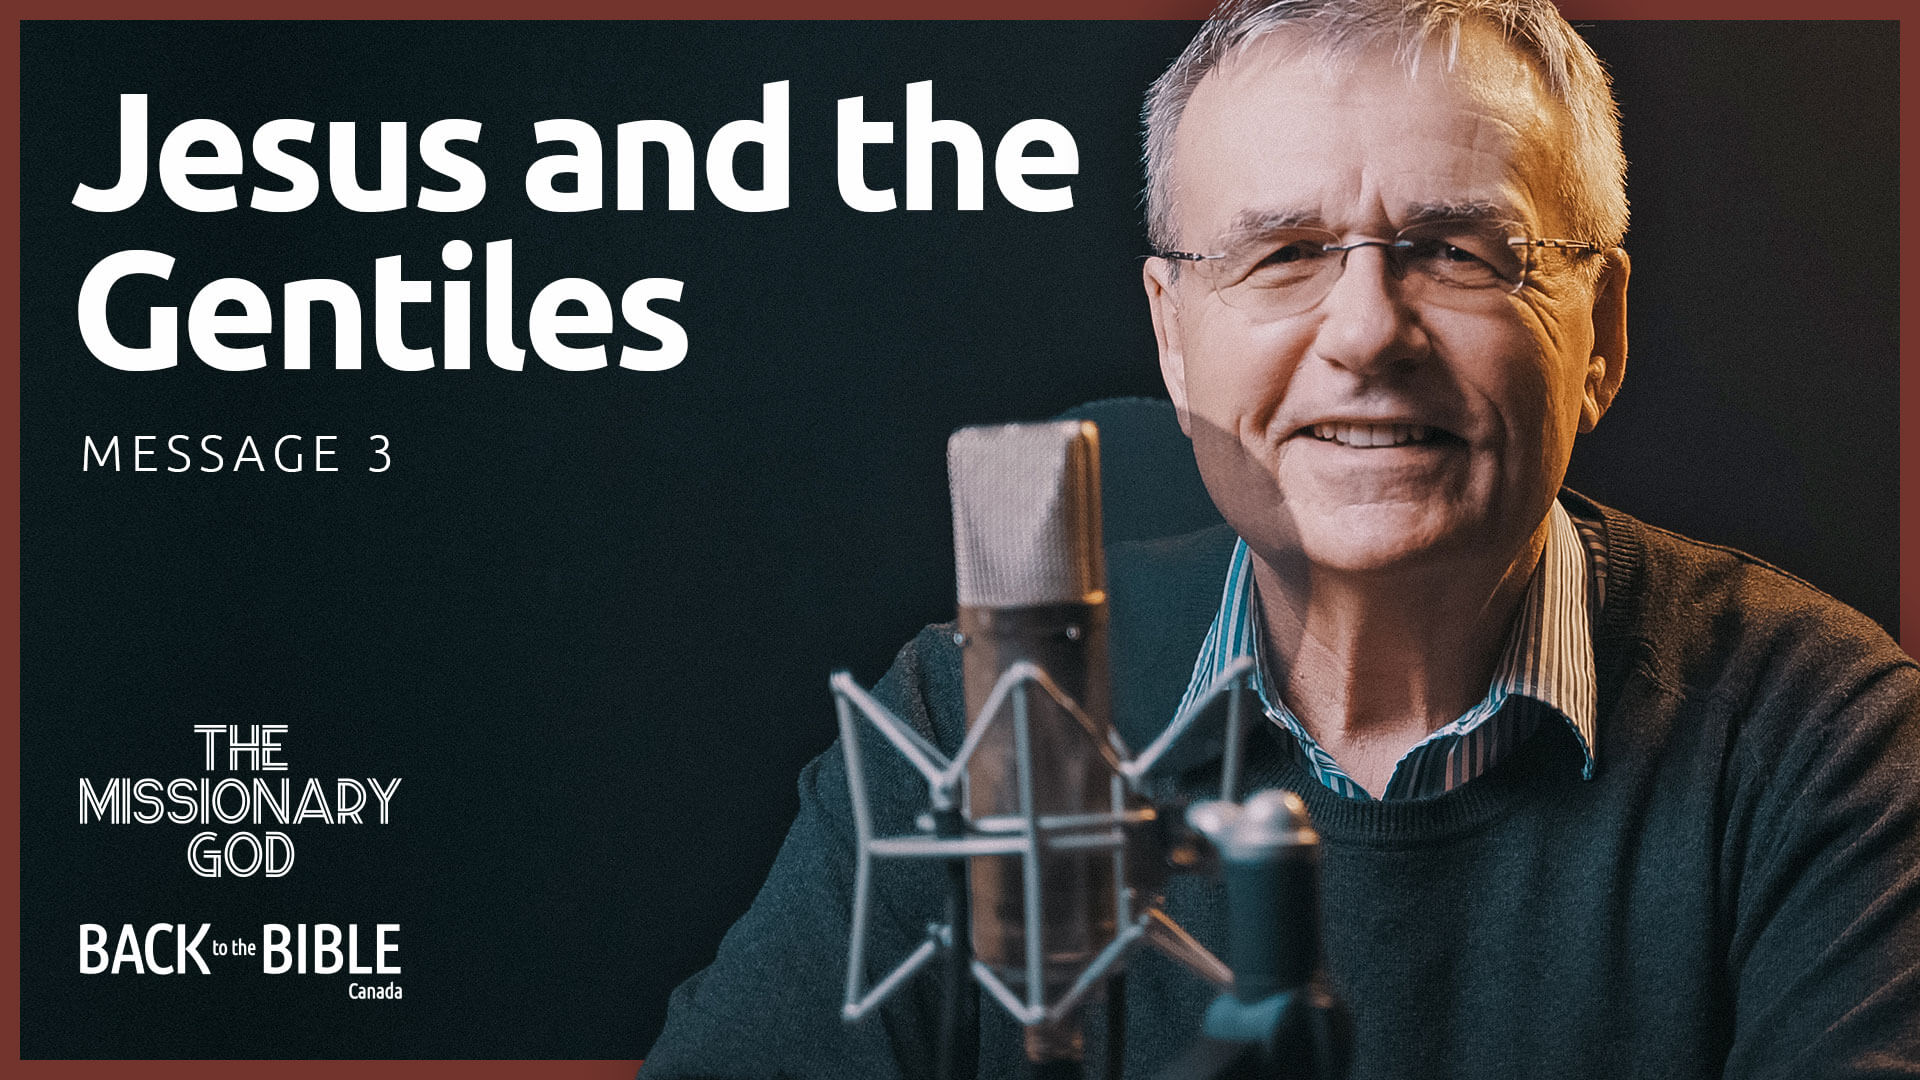 Jesus and the Gentiles | Back to the Bible Canada with Dr. John Neufeld